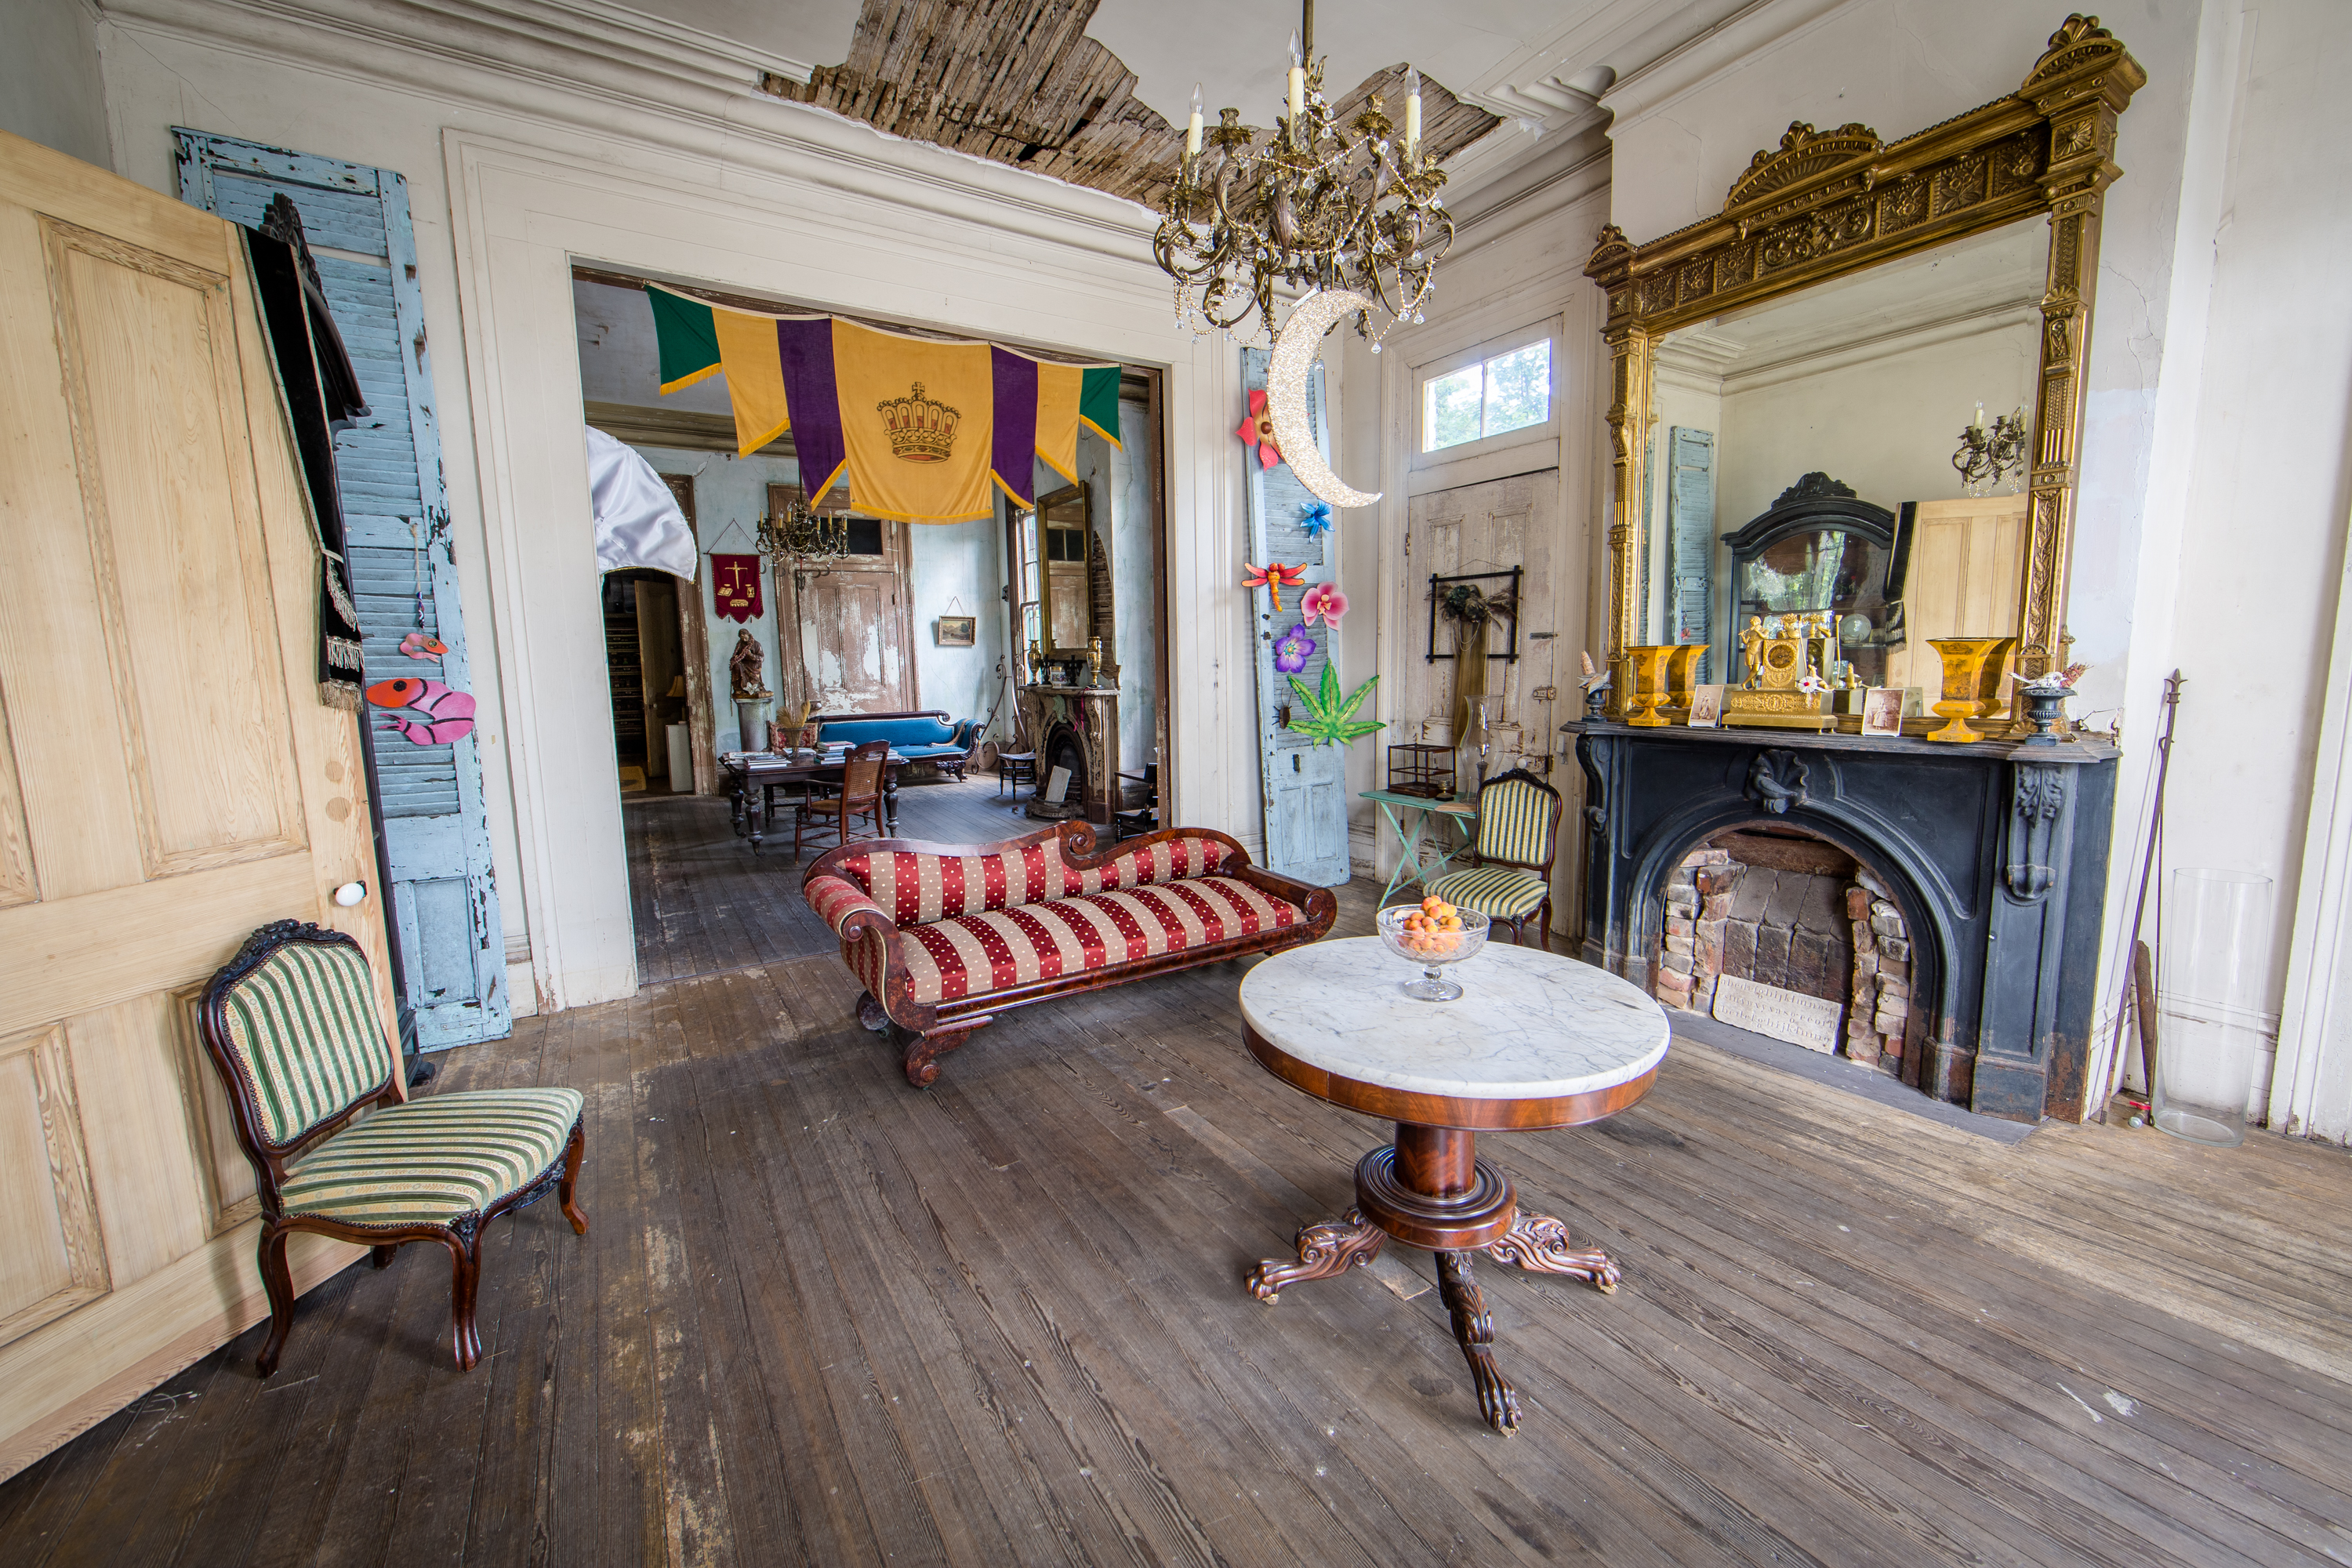 New Orleans Interior Design - Curbed New Orleans